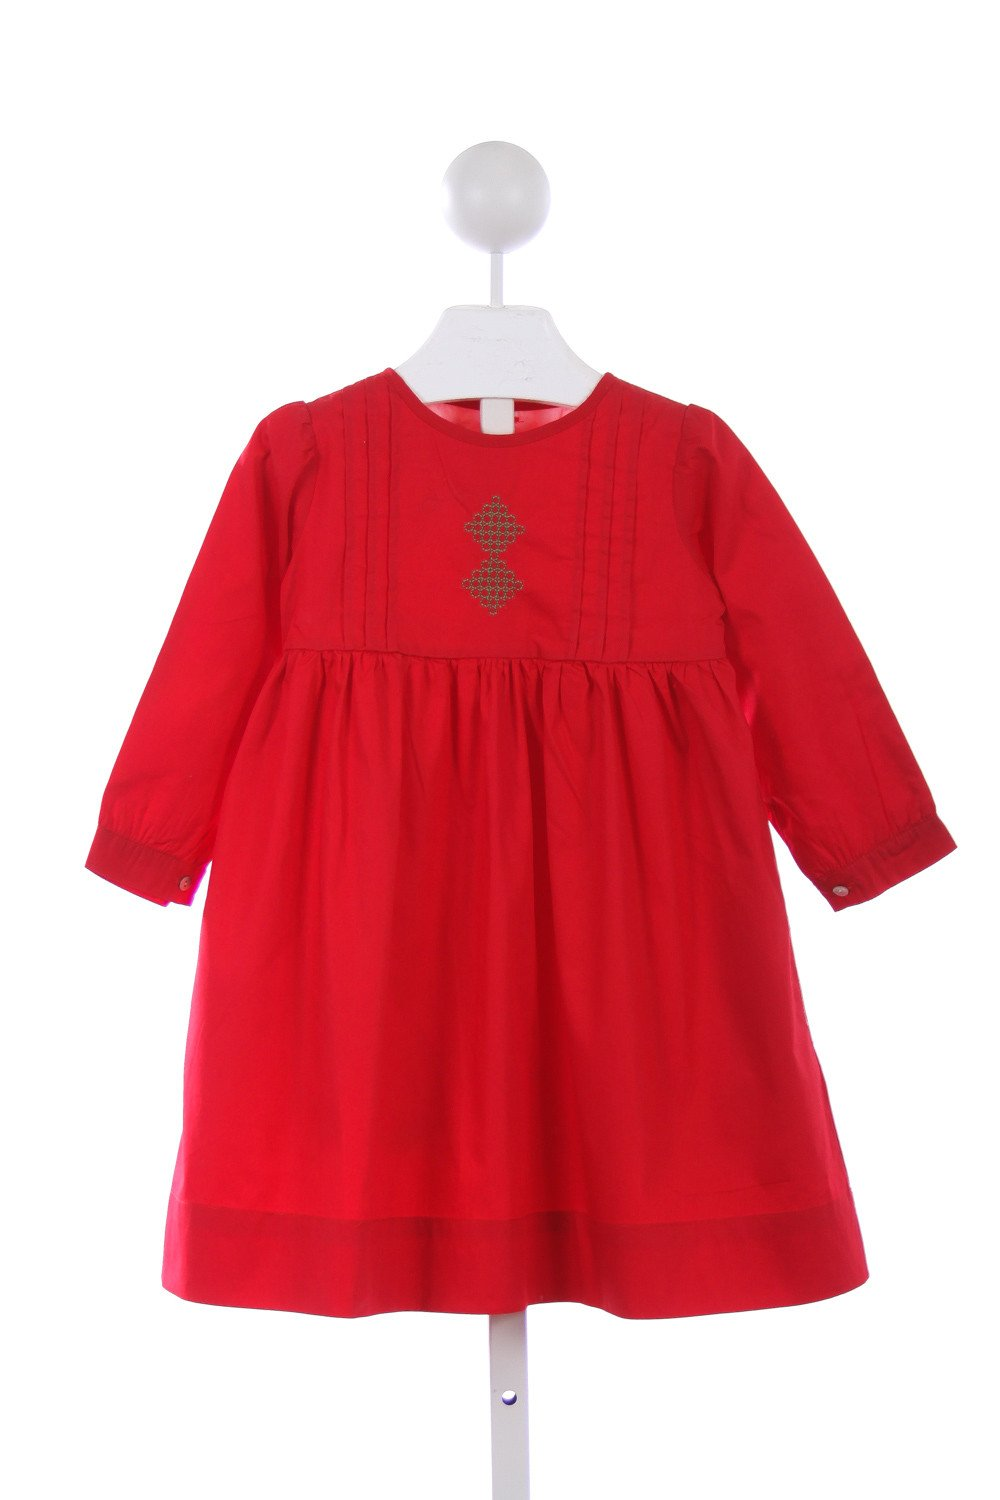 THE OAKS APPAREL RED LONG SLEEVE DRESS WITH GREEN EMBROIDERY